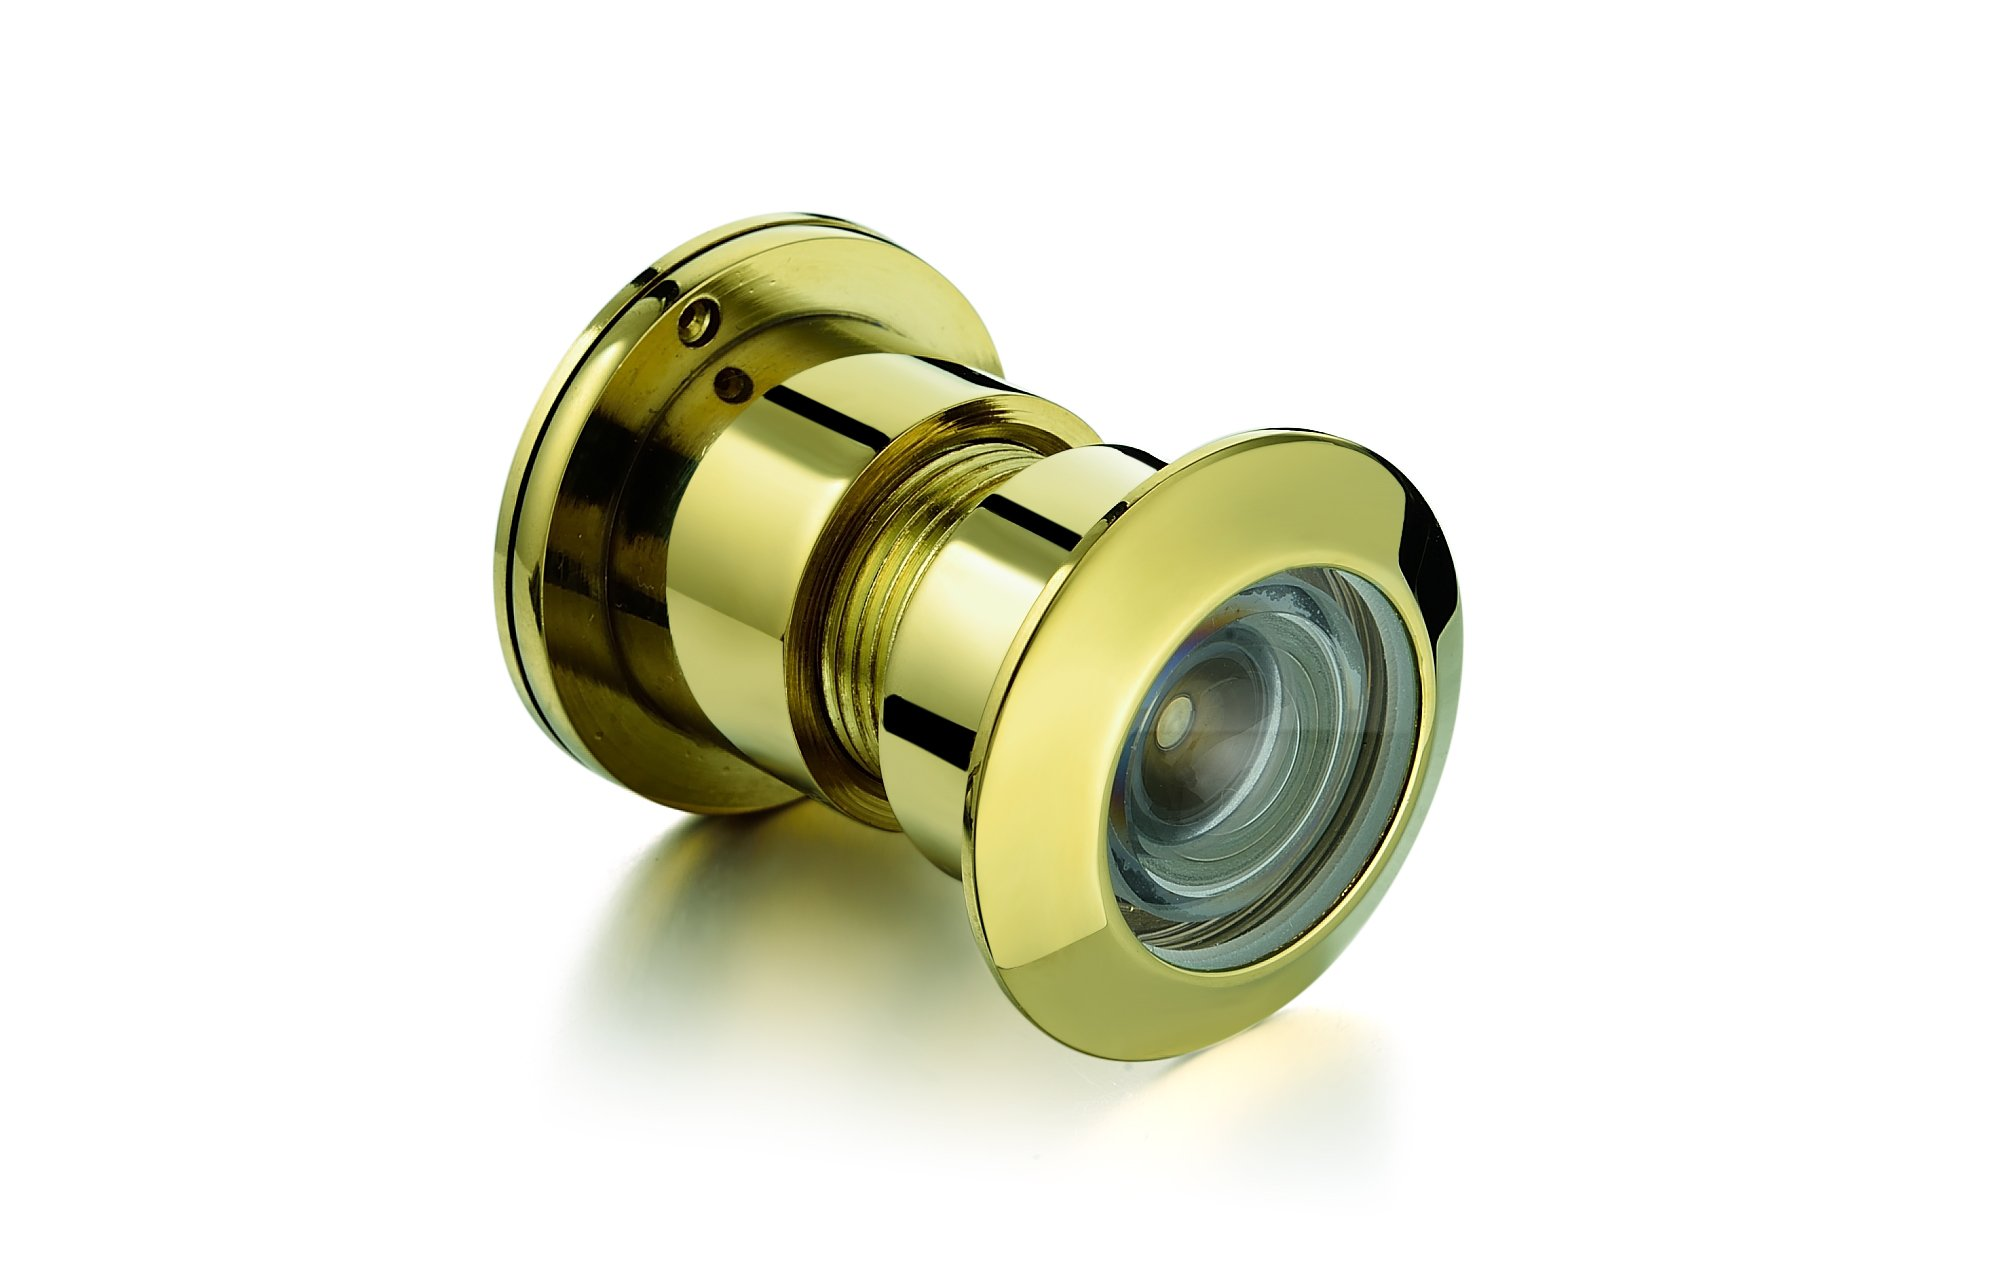 TOGU TG3828YG-PVD Brass UL Listed 220-degree Door Viewer with Heavy Duty Privacy Cover for 1-3/5'' to 2-1/6'' Doors, PVD Gold Finish